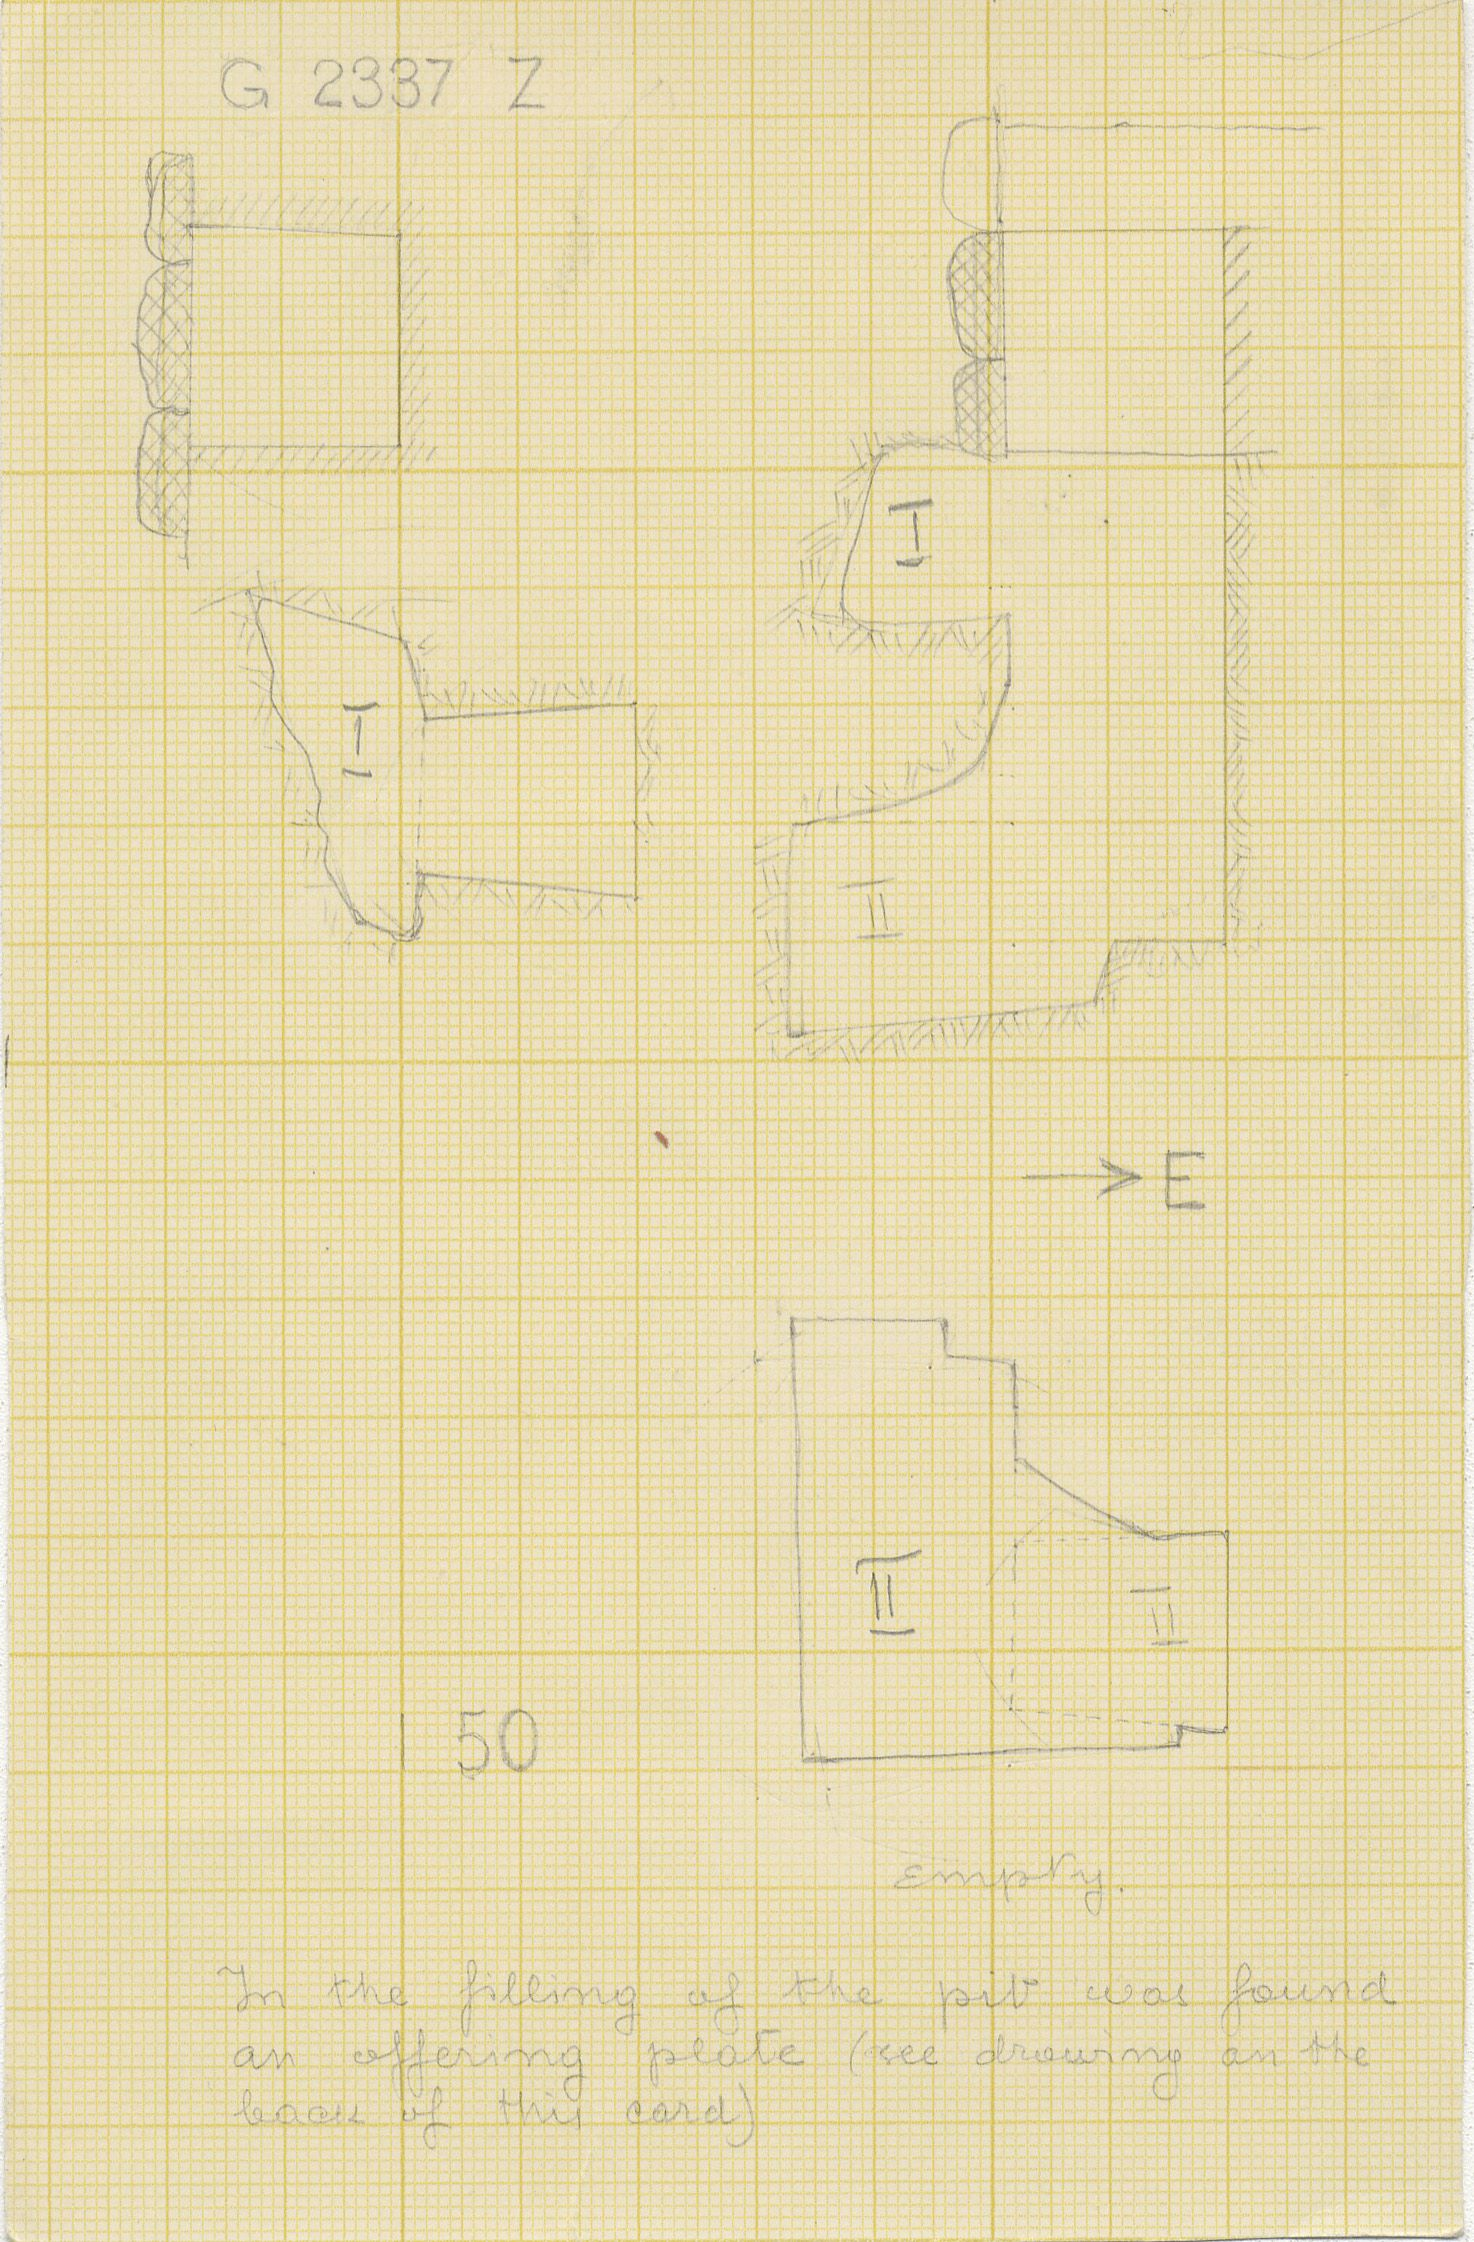 Maps and plans: G 2337, Shaft Z